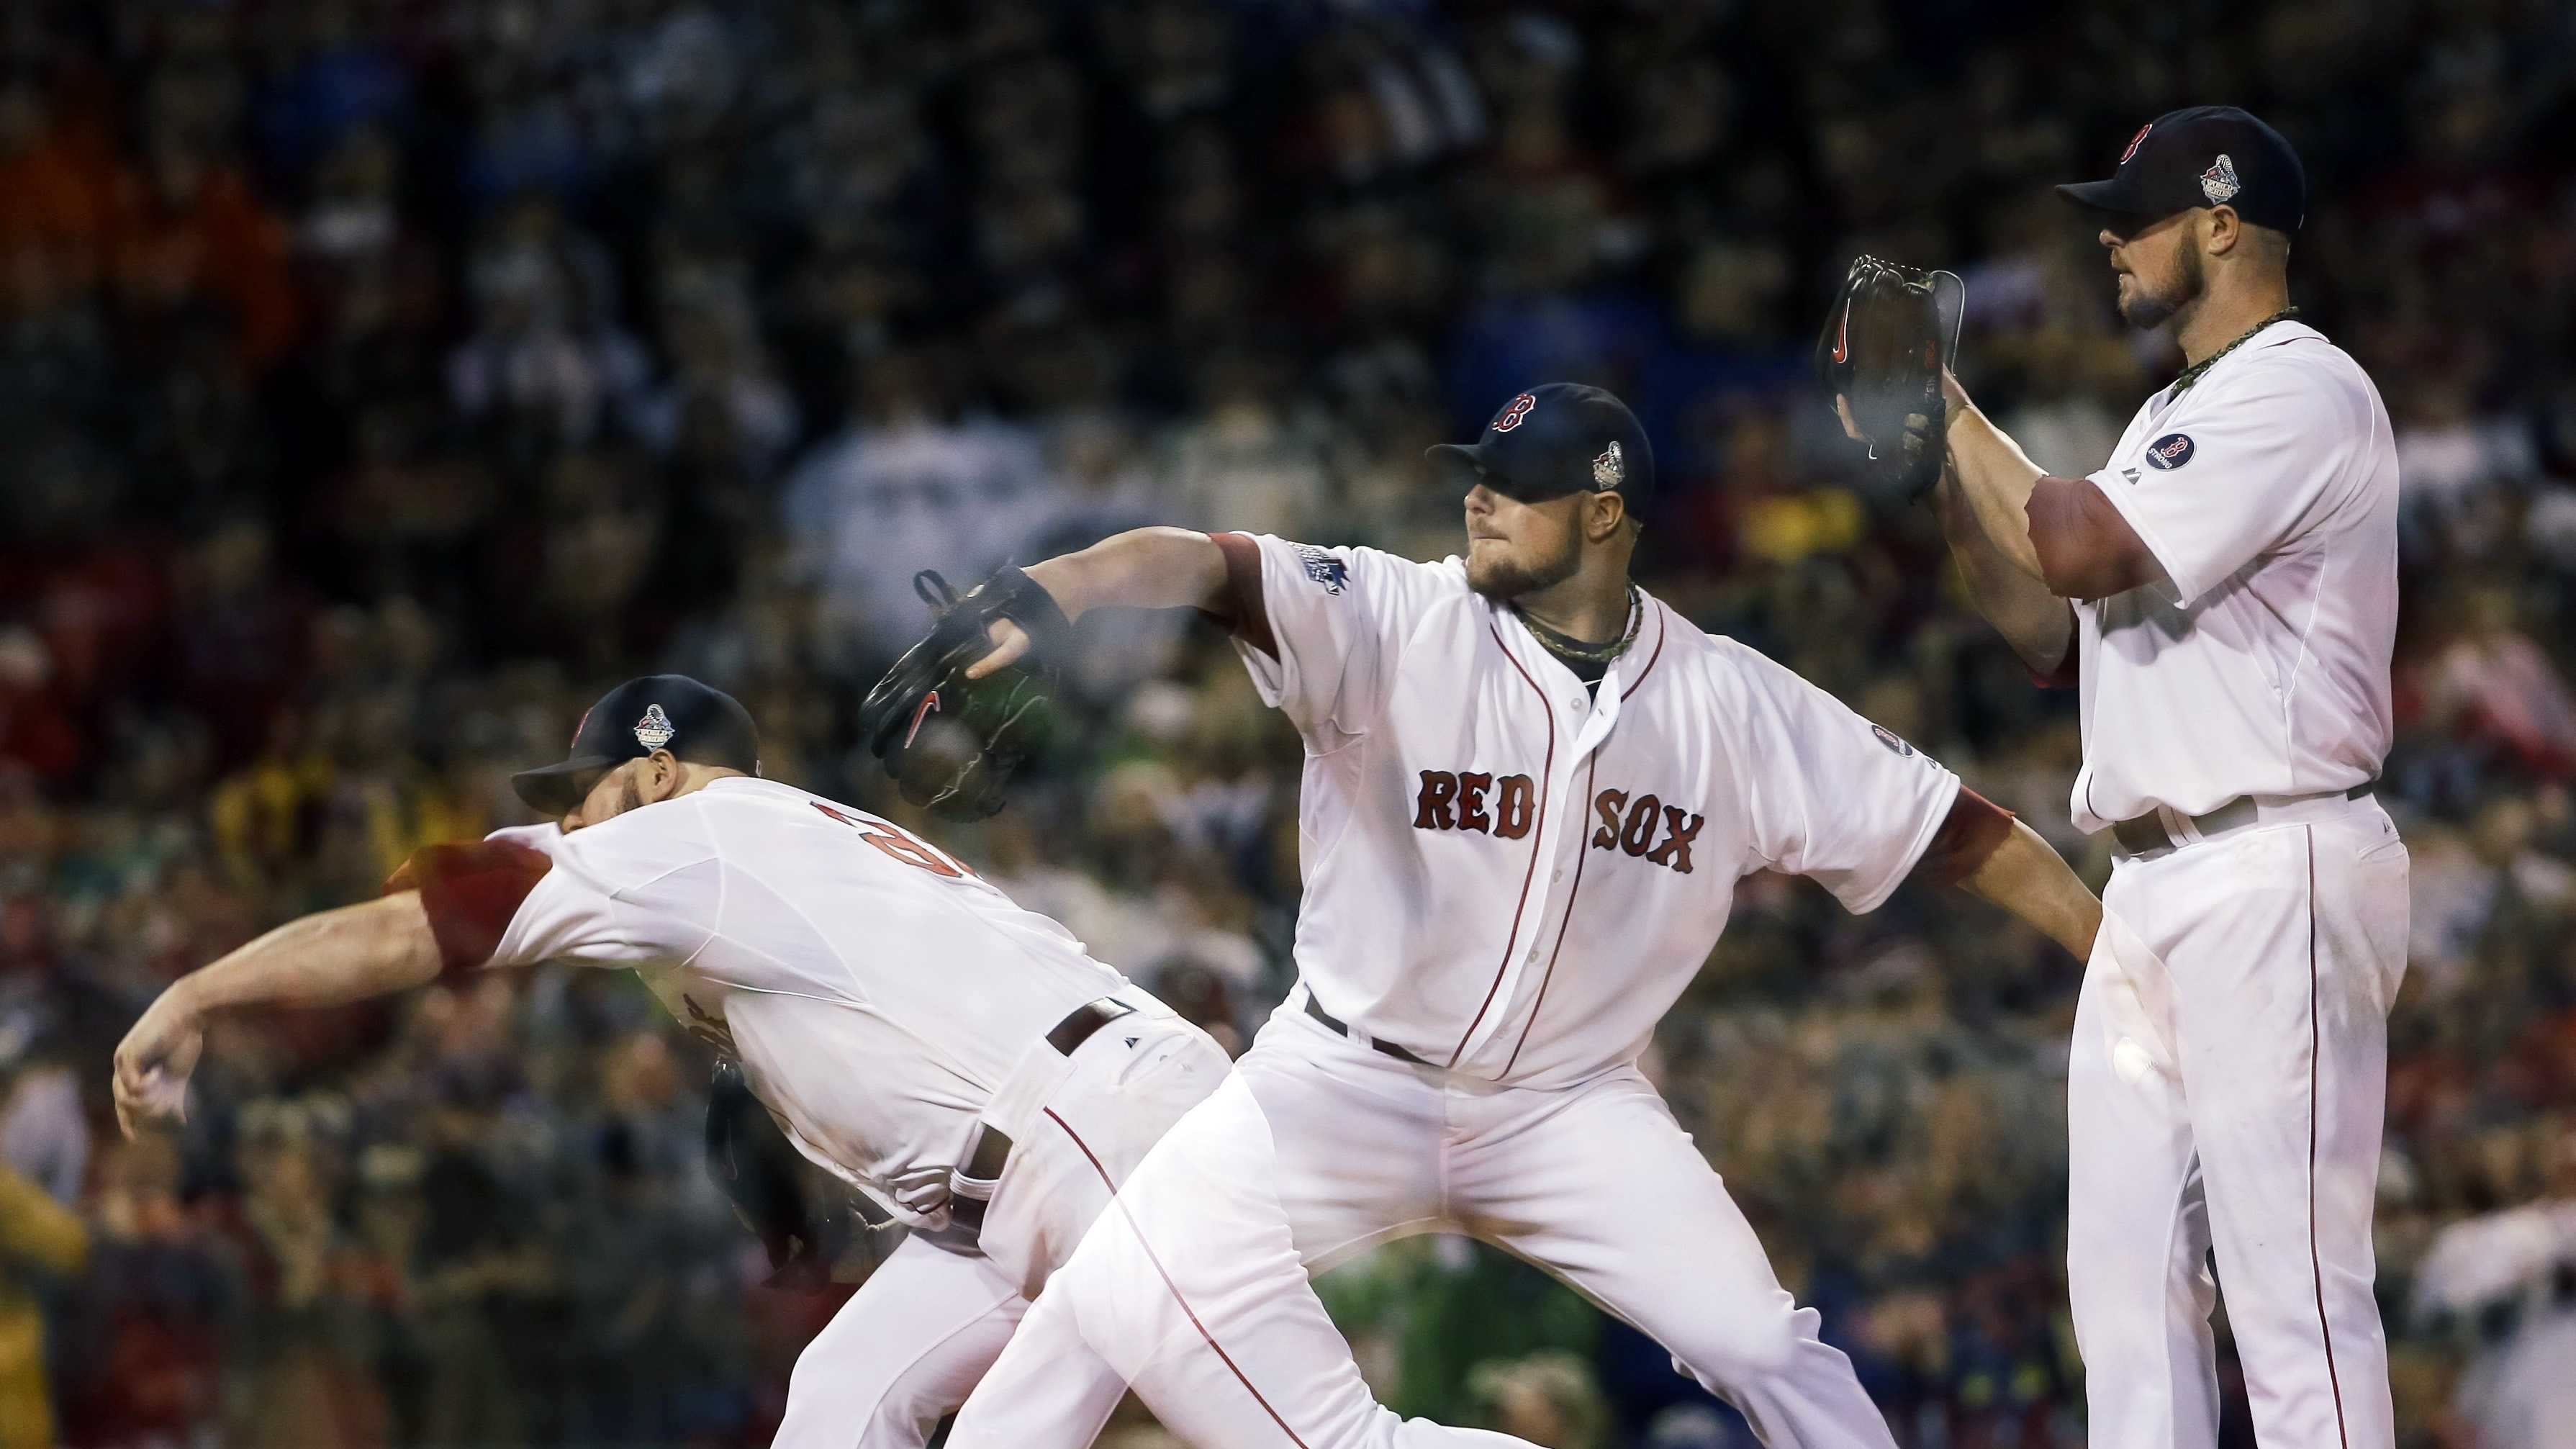 This multiple exposure image shows Boston Red Sox starting pitcher Jon Lester throwing during the seventh inning of Game 1 of baseball's World Series against the St. Louis Cardinals Wednesday, Oct. 23, 2013, in Boston.